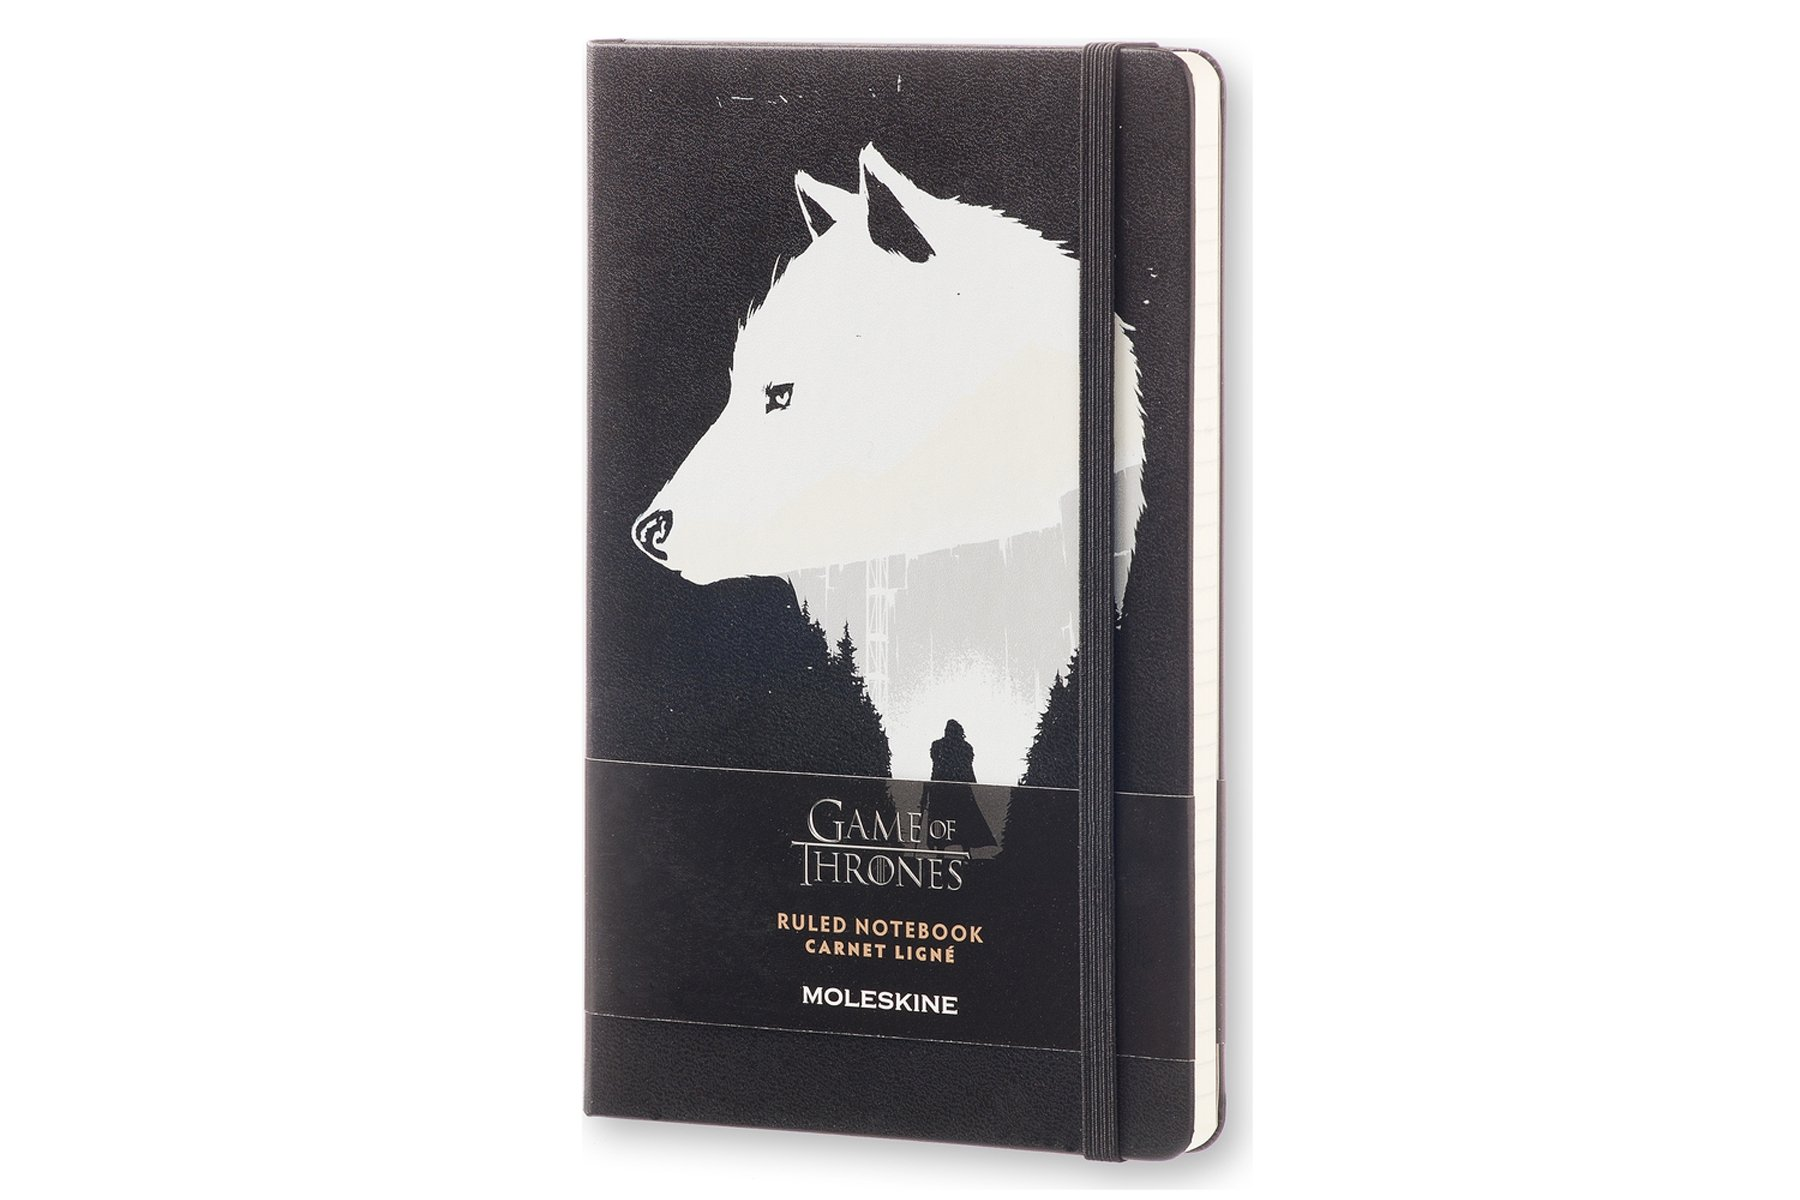 Moleskine Game of Thrones Limited Edition Notebook, Large, Ruled, Black, Hard Cover (8051272893090)